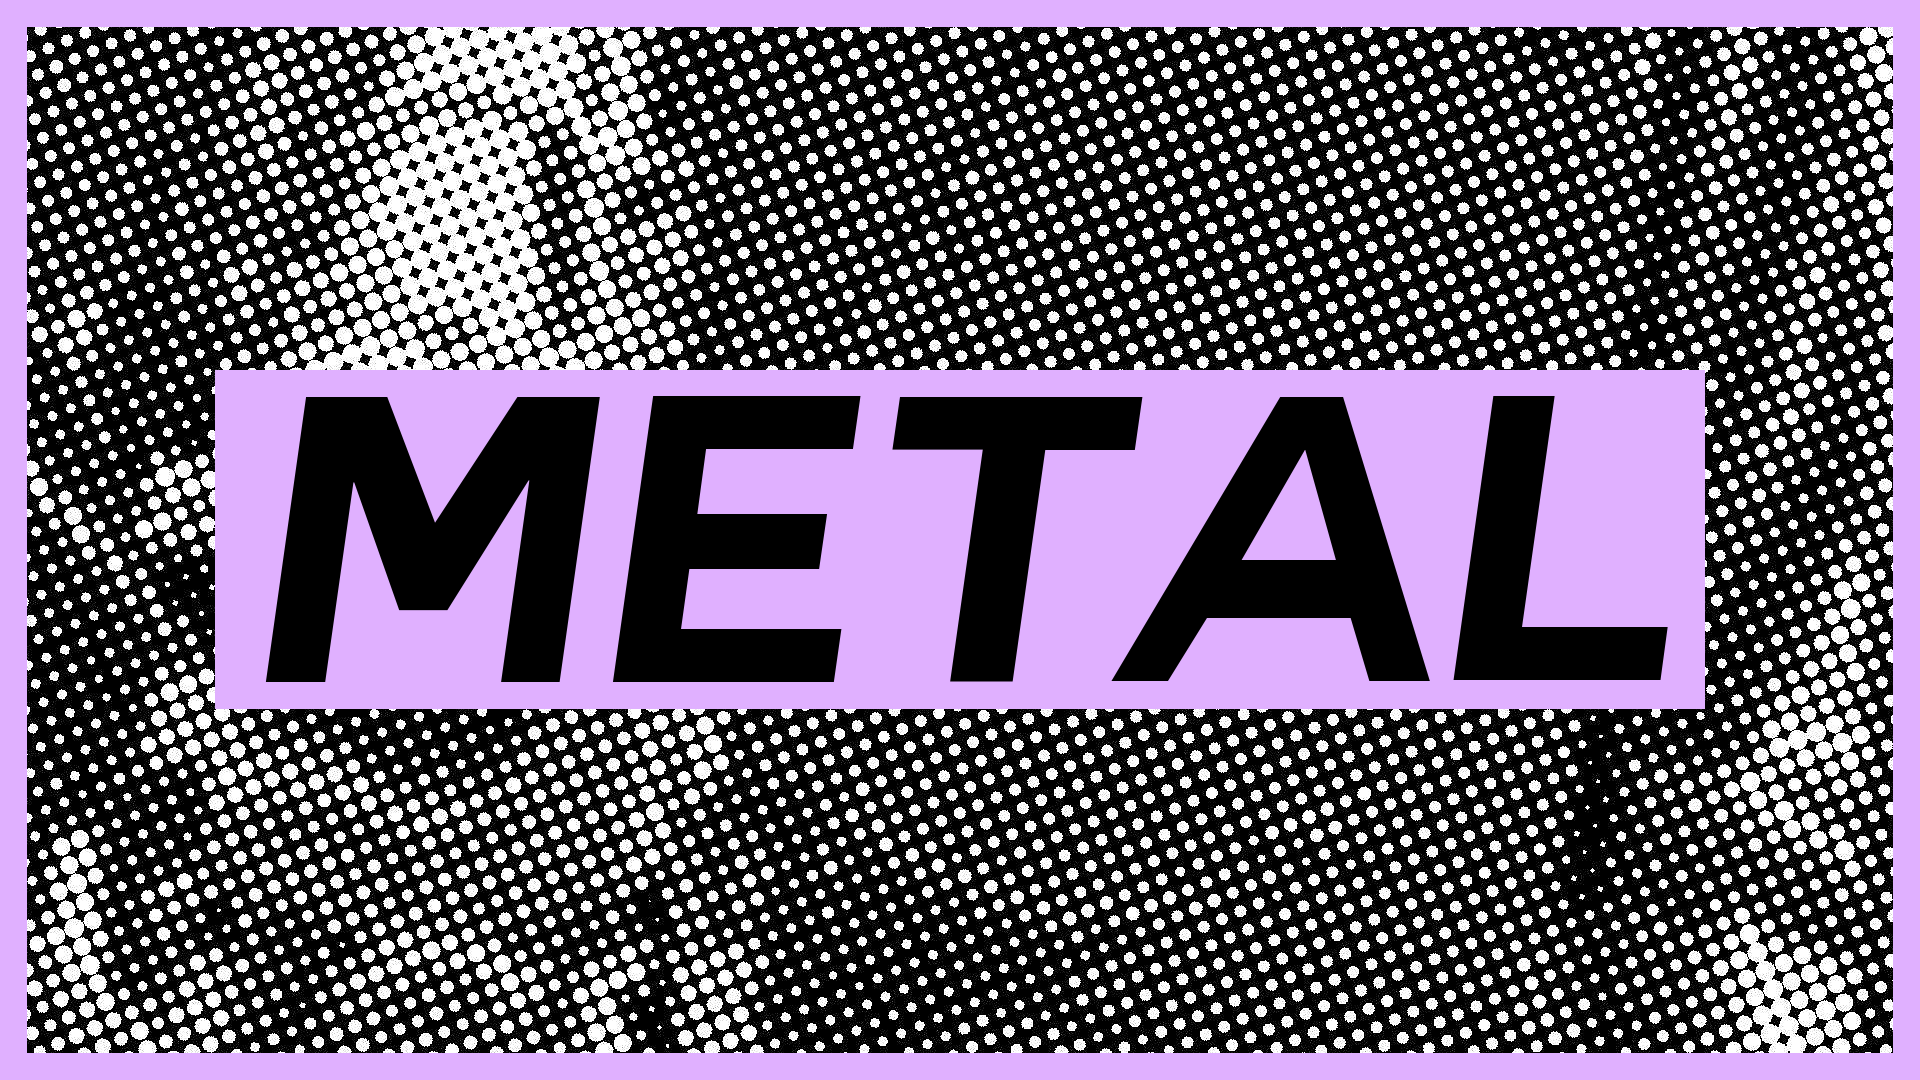 generated black and white image with the word METAL in bold font overlaid